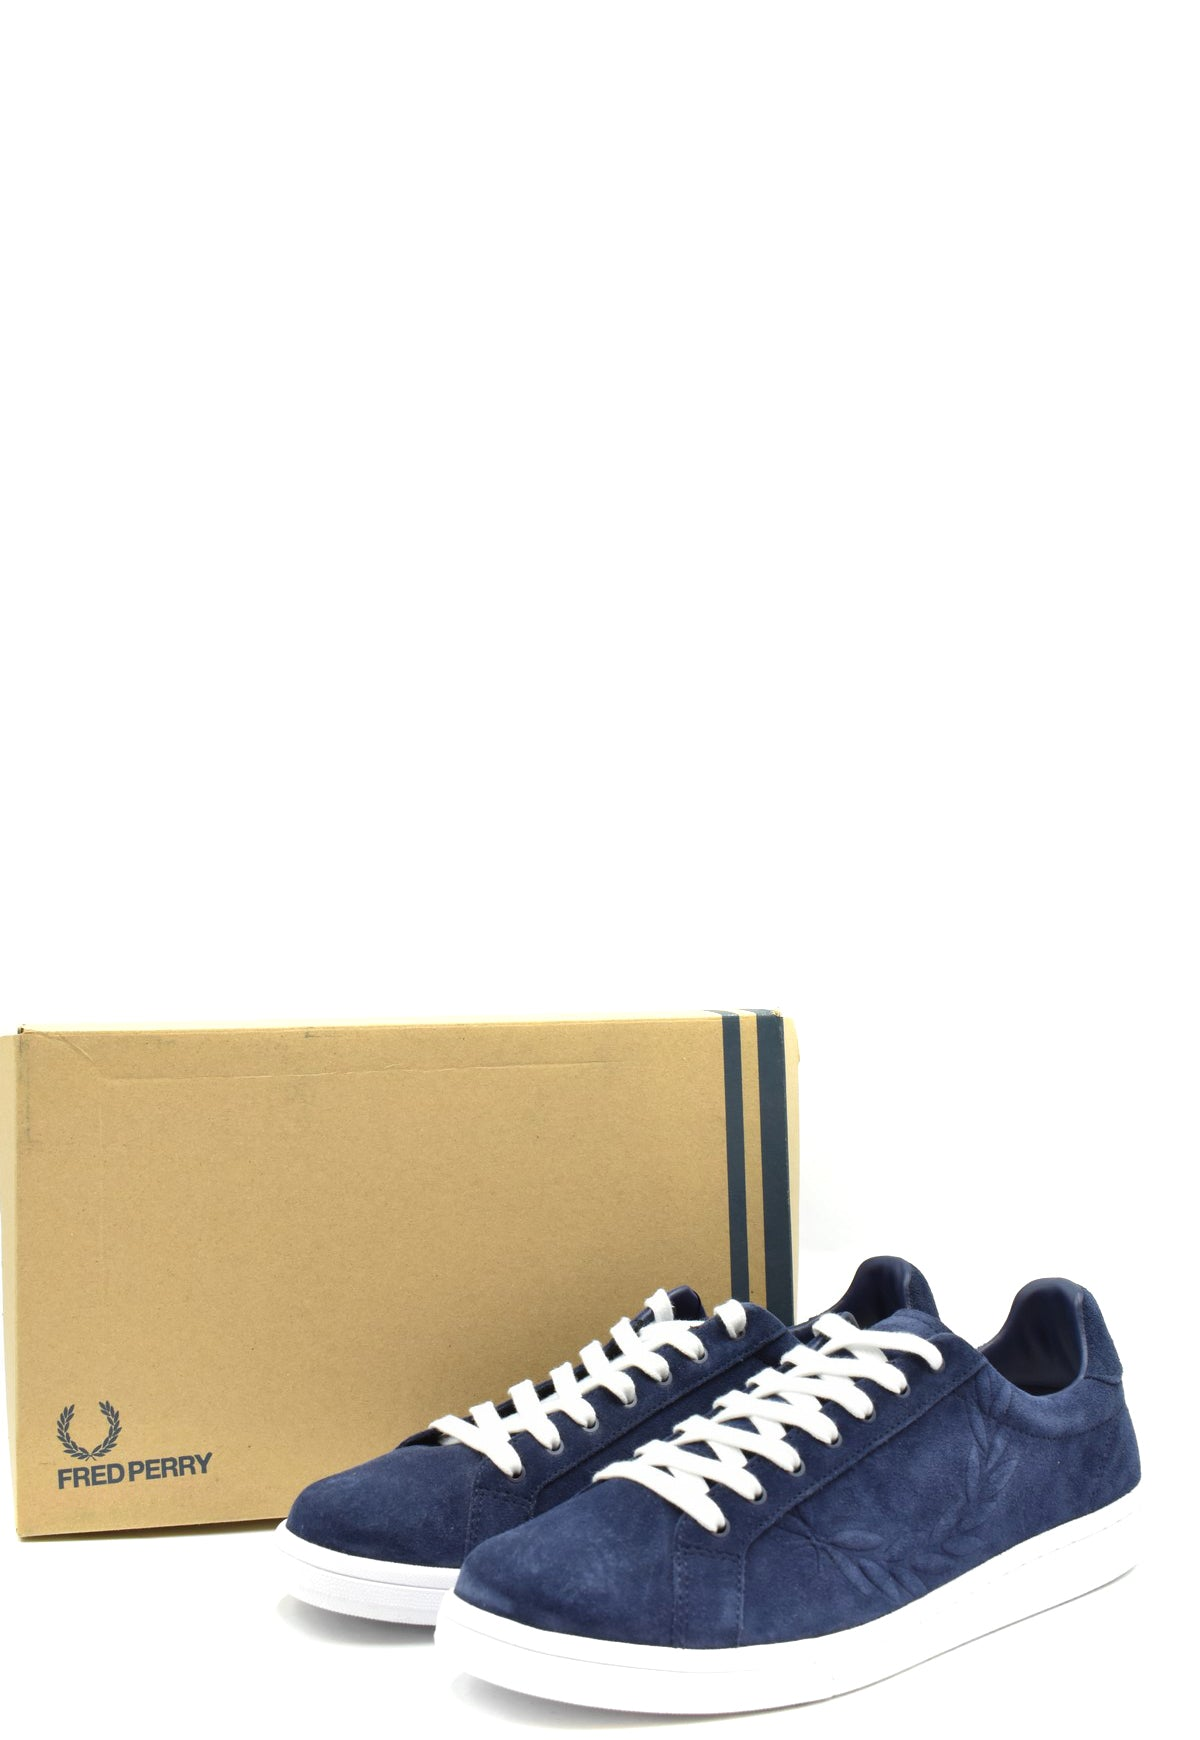 Shoes Fred Perry-Sports & Entertainment - Sneakers-Product Details Terms: New With LabelMain Color: BlueType Of Accessory: ShoesSeason: Fall / WinterMade In: VietnamGender: ManSize: UkComposition: Chamois 100%Year: 2019Manufacturer Part Number: B5180-Keyomi-Sook